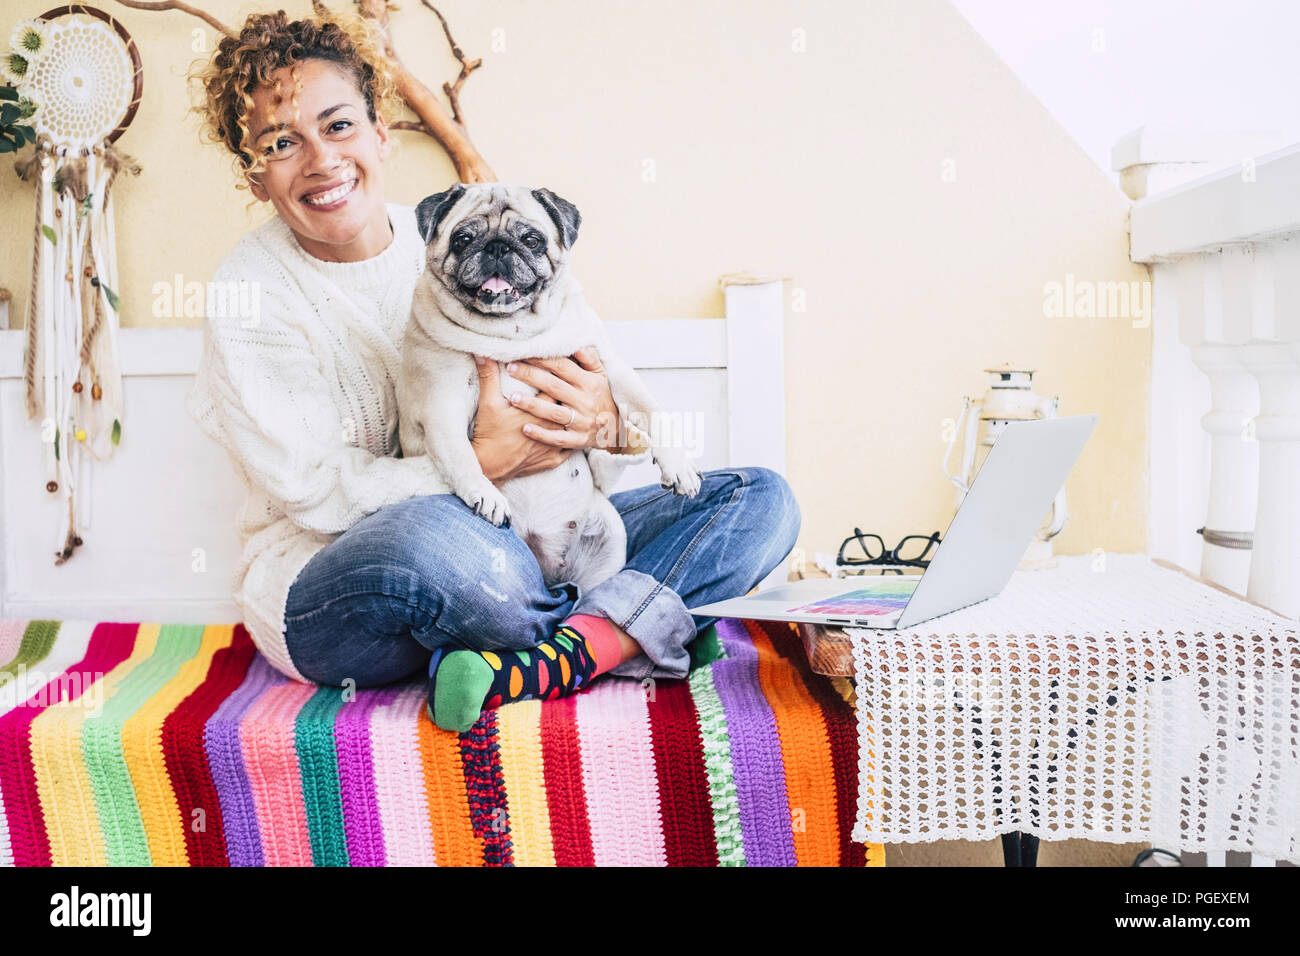 total happiness for beautiful cheerful caucasian young woman hugged with her best friends fat dog pug smiling too. friendship at home and enjoy lifest - Stock Image